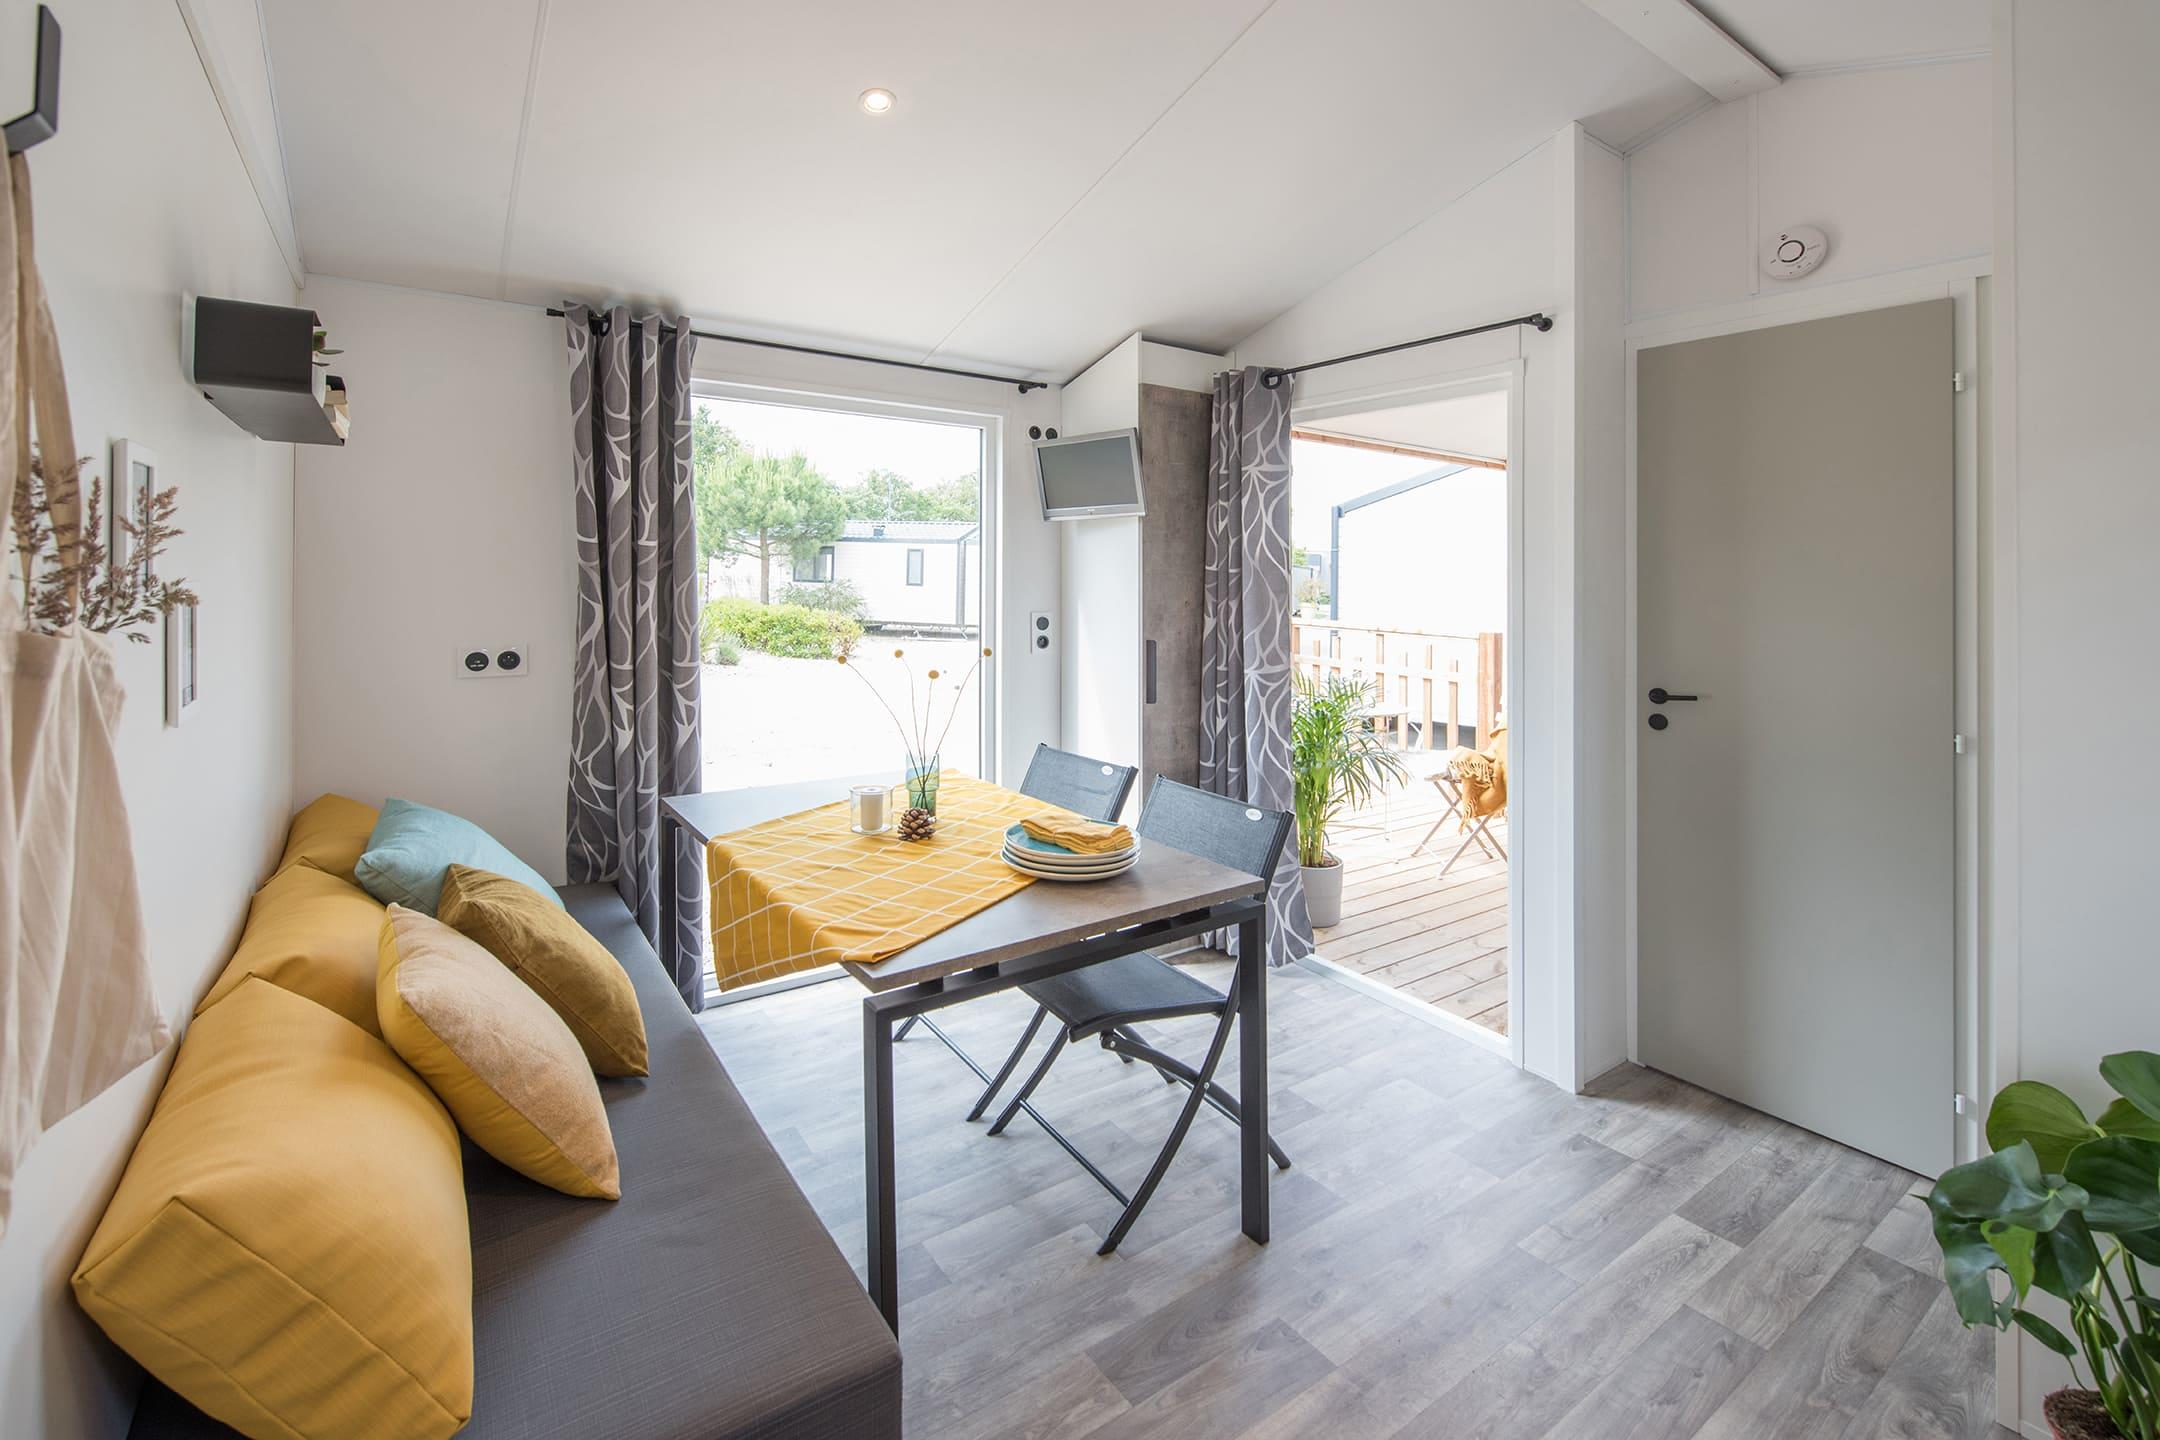 Location - Chalet Malaga 2 Pers (S) - Camping Airotel Oléron